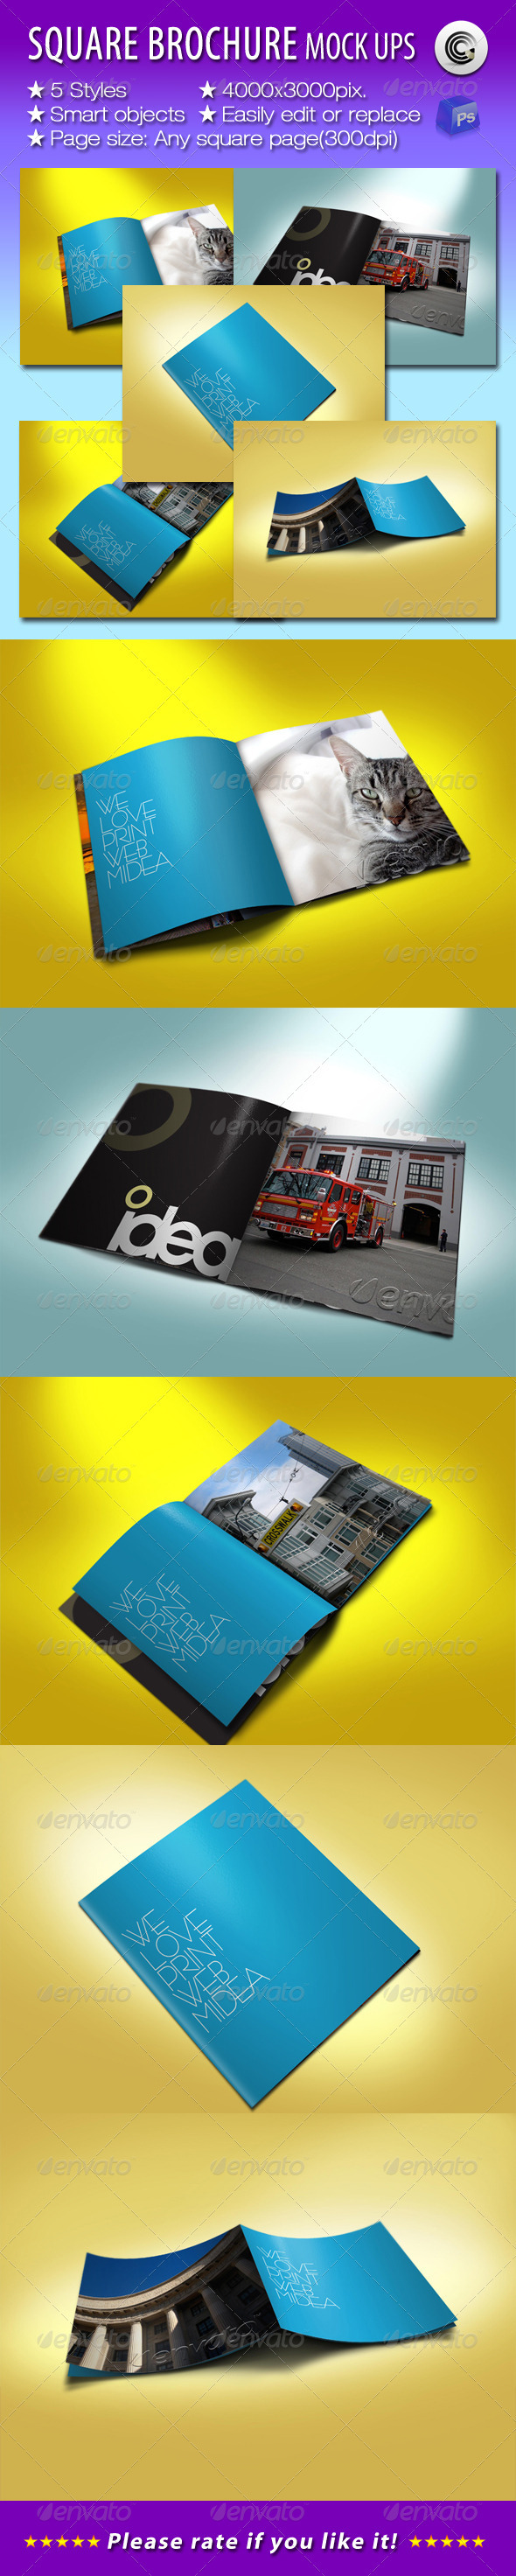 Square Brochures Preview Mock-ups - Brochures Print